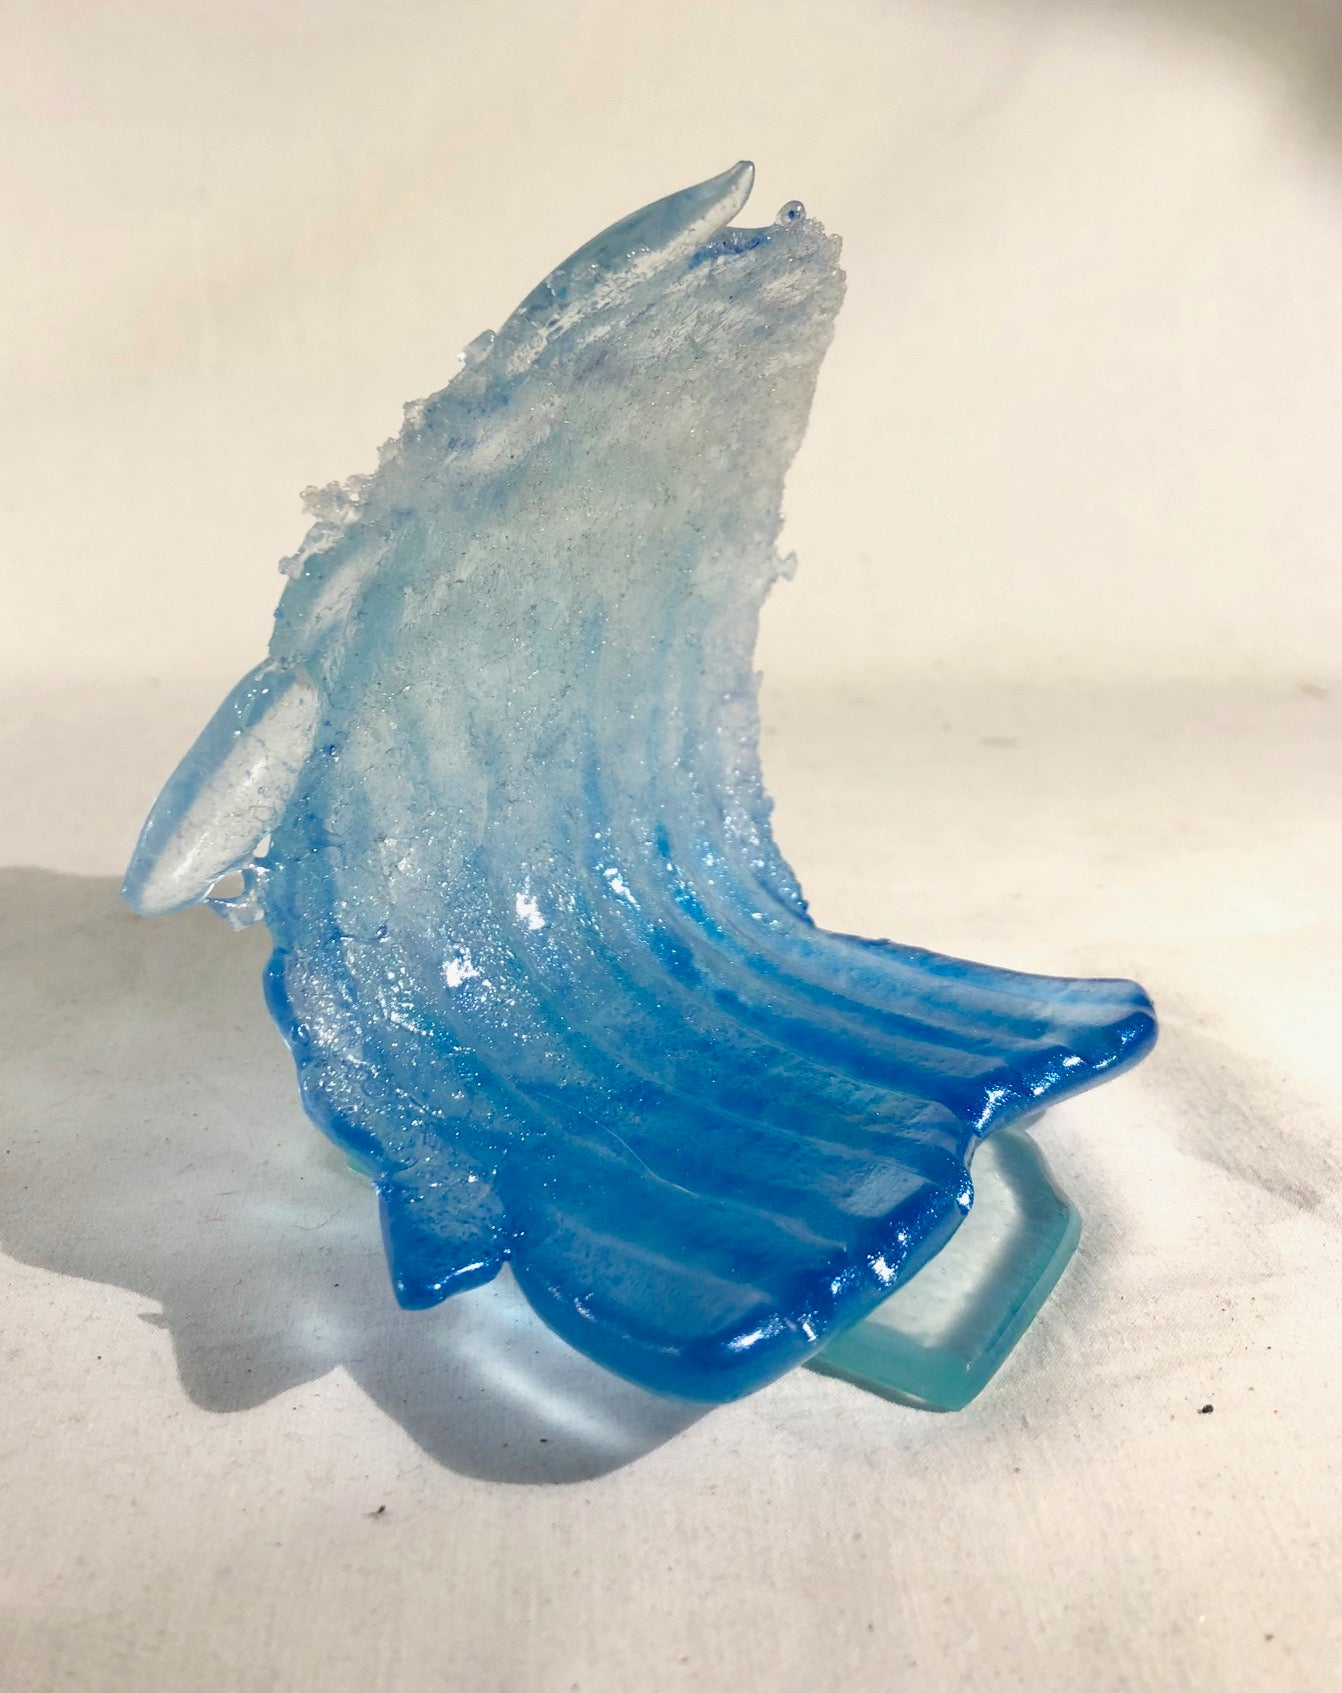 Small Foamy Glass Waves - Goodwin Glassworks Hunter Glass  Glass Wave Art